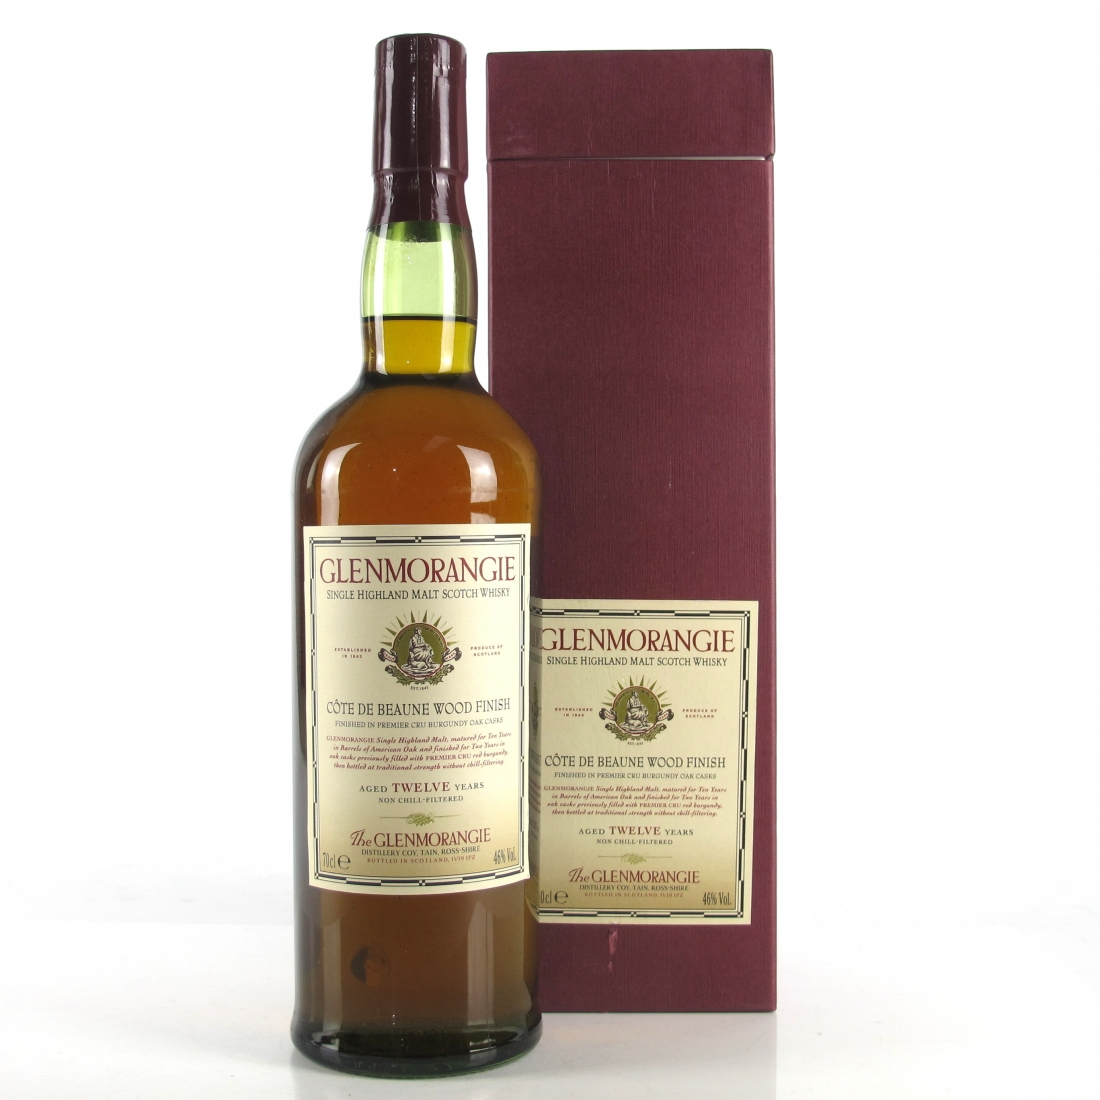 Glenmorangie 12 Year Old Cote de Beaune Finish